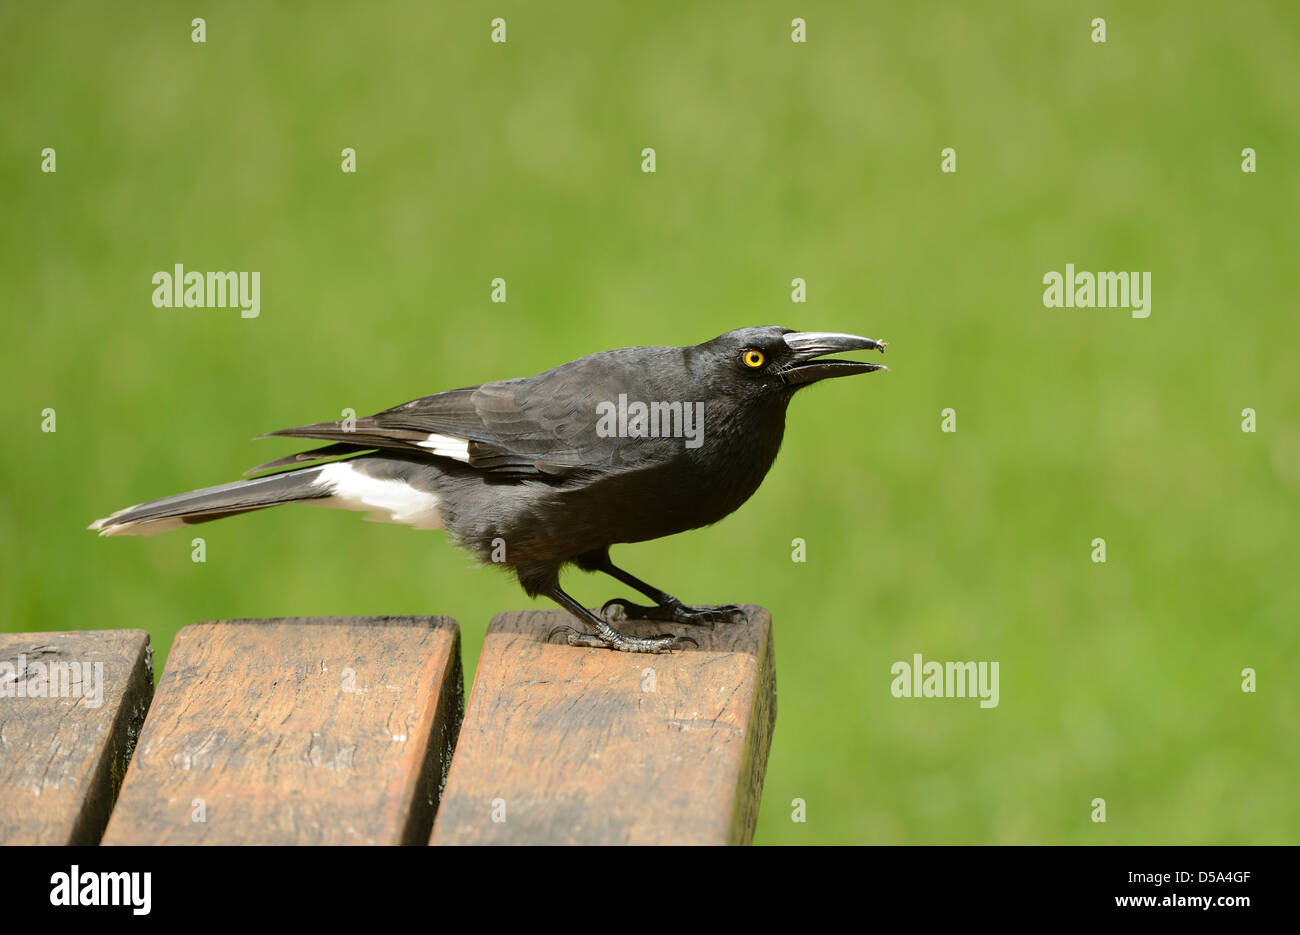 Pied Currawong (Strepera graculina) standing on garden table, Victoria, Australia, November - Stock Image